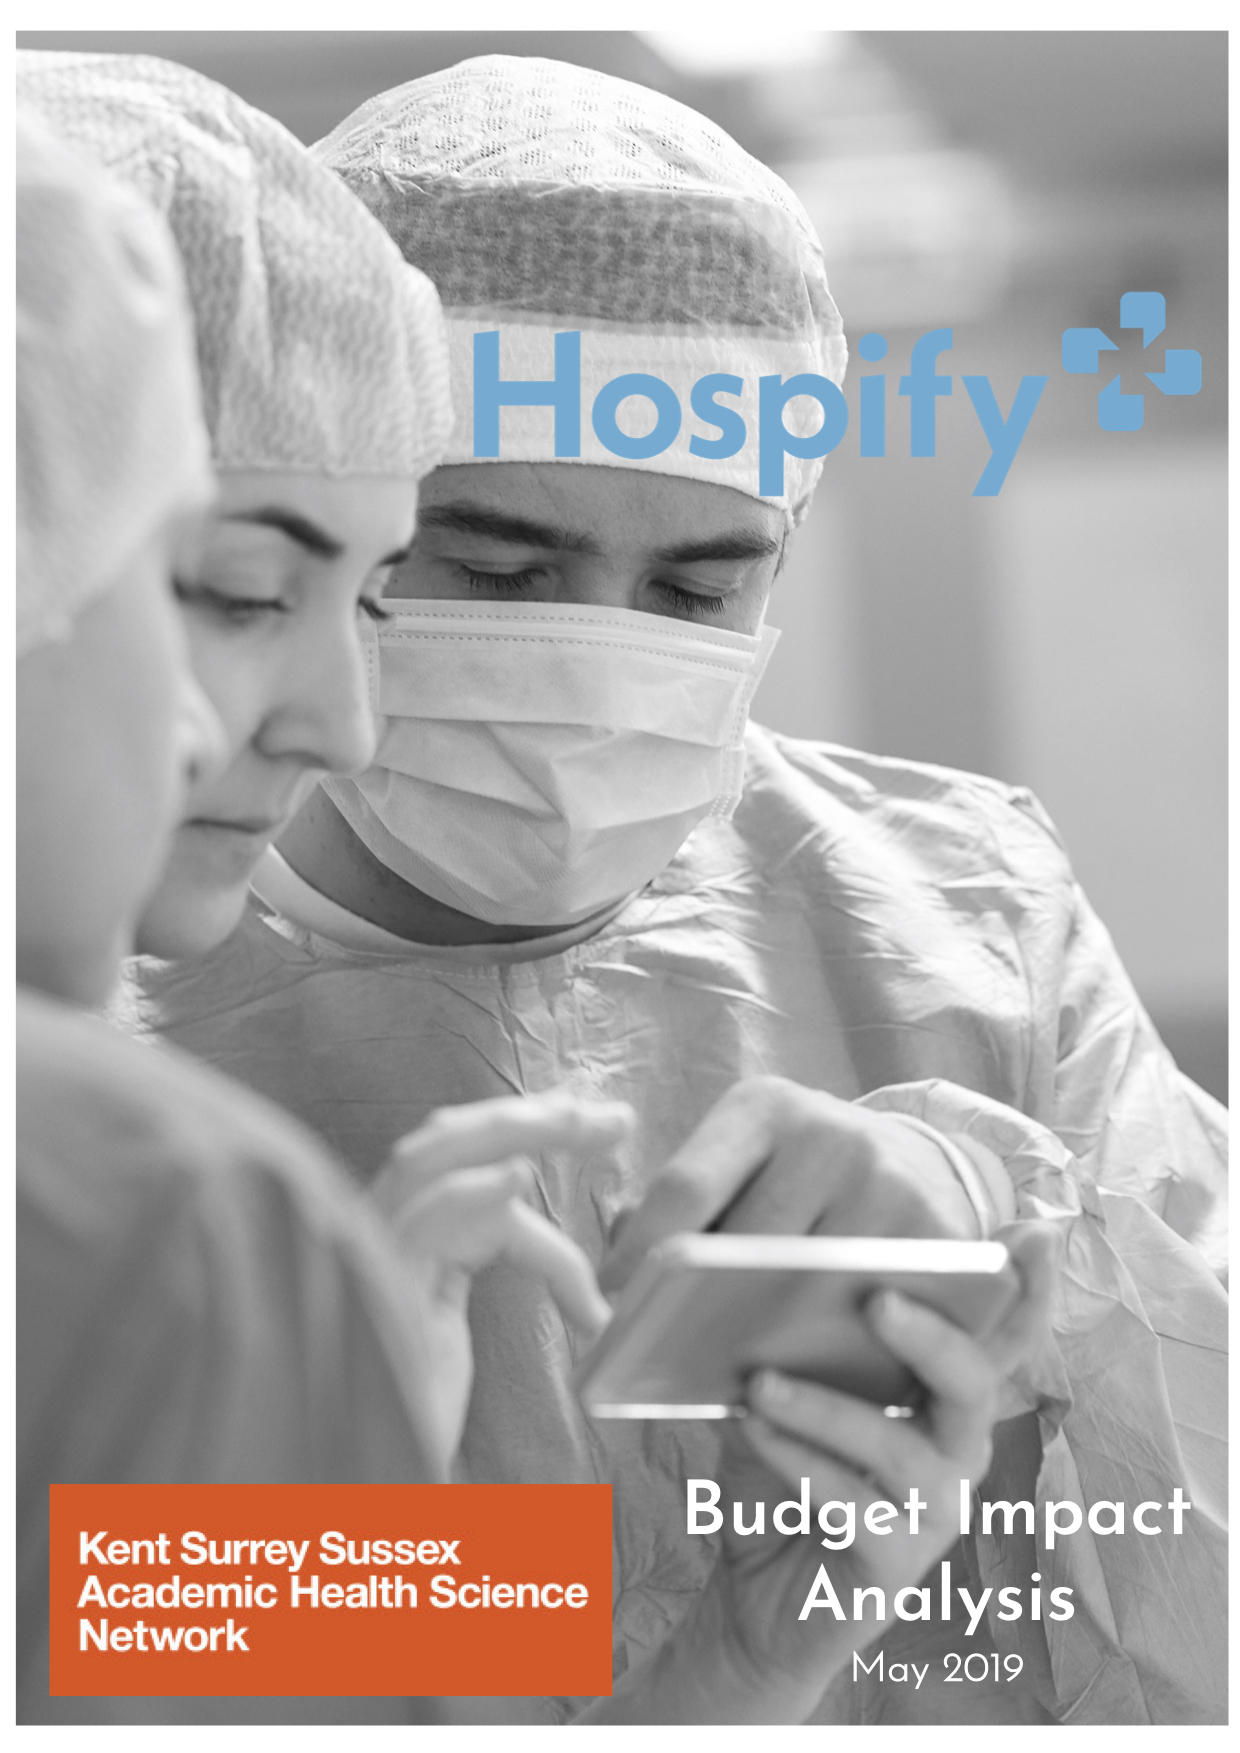 Hospify Budget Impact Analysis COVER.jpg